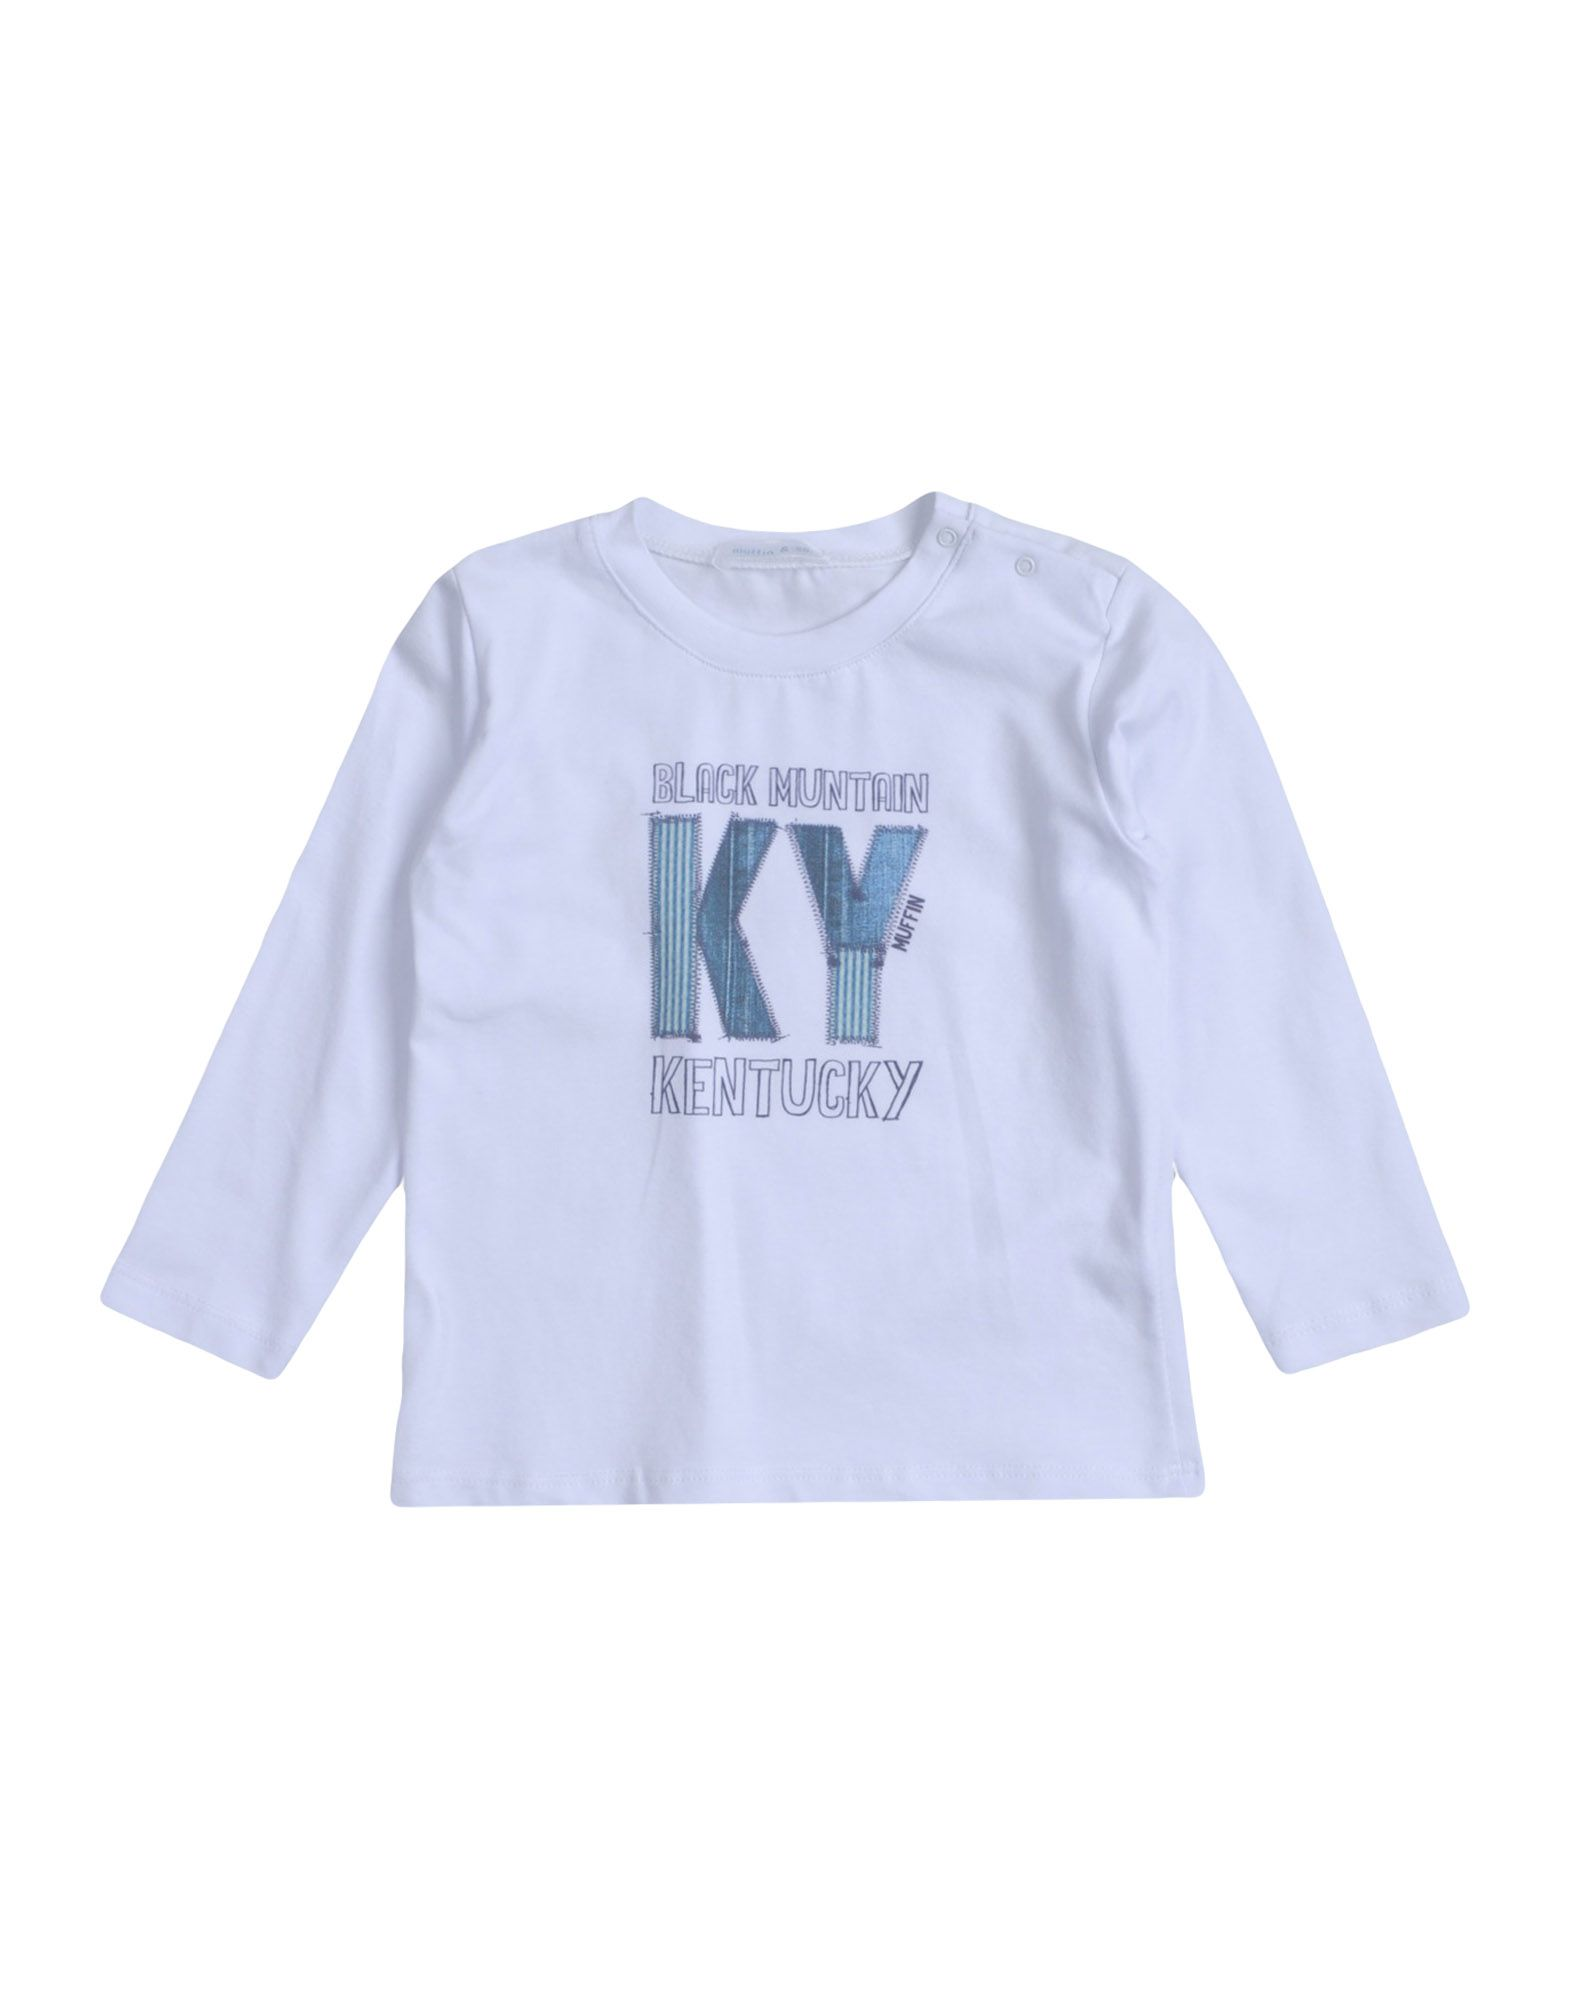 Muffin & Co. Kids' T-shirts In White